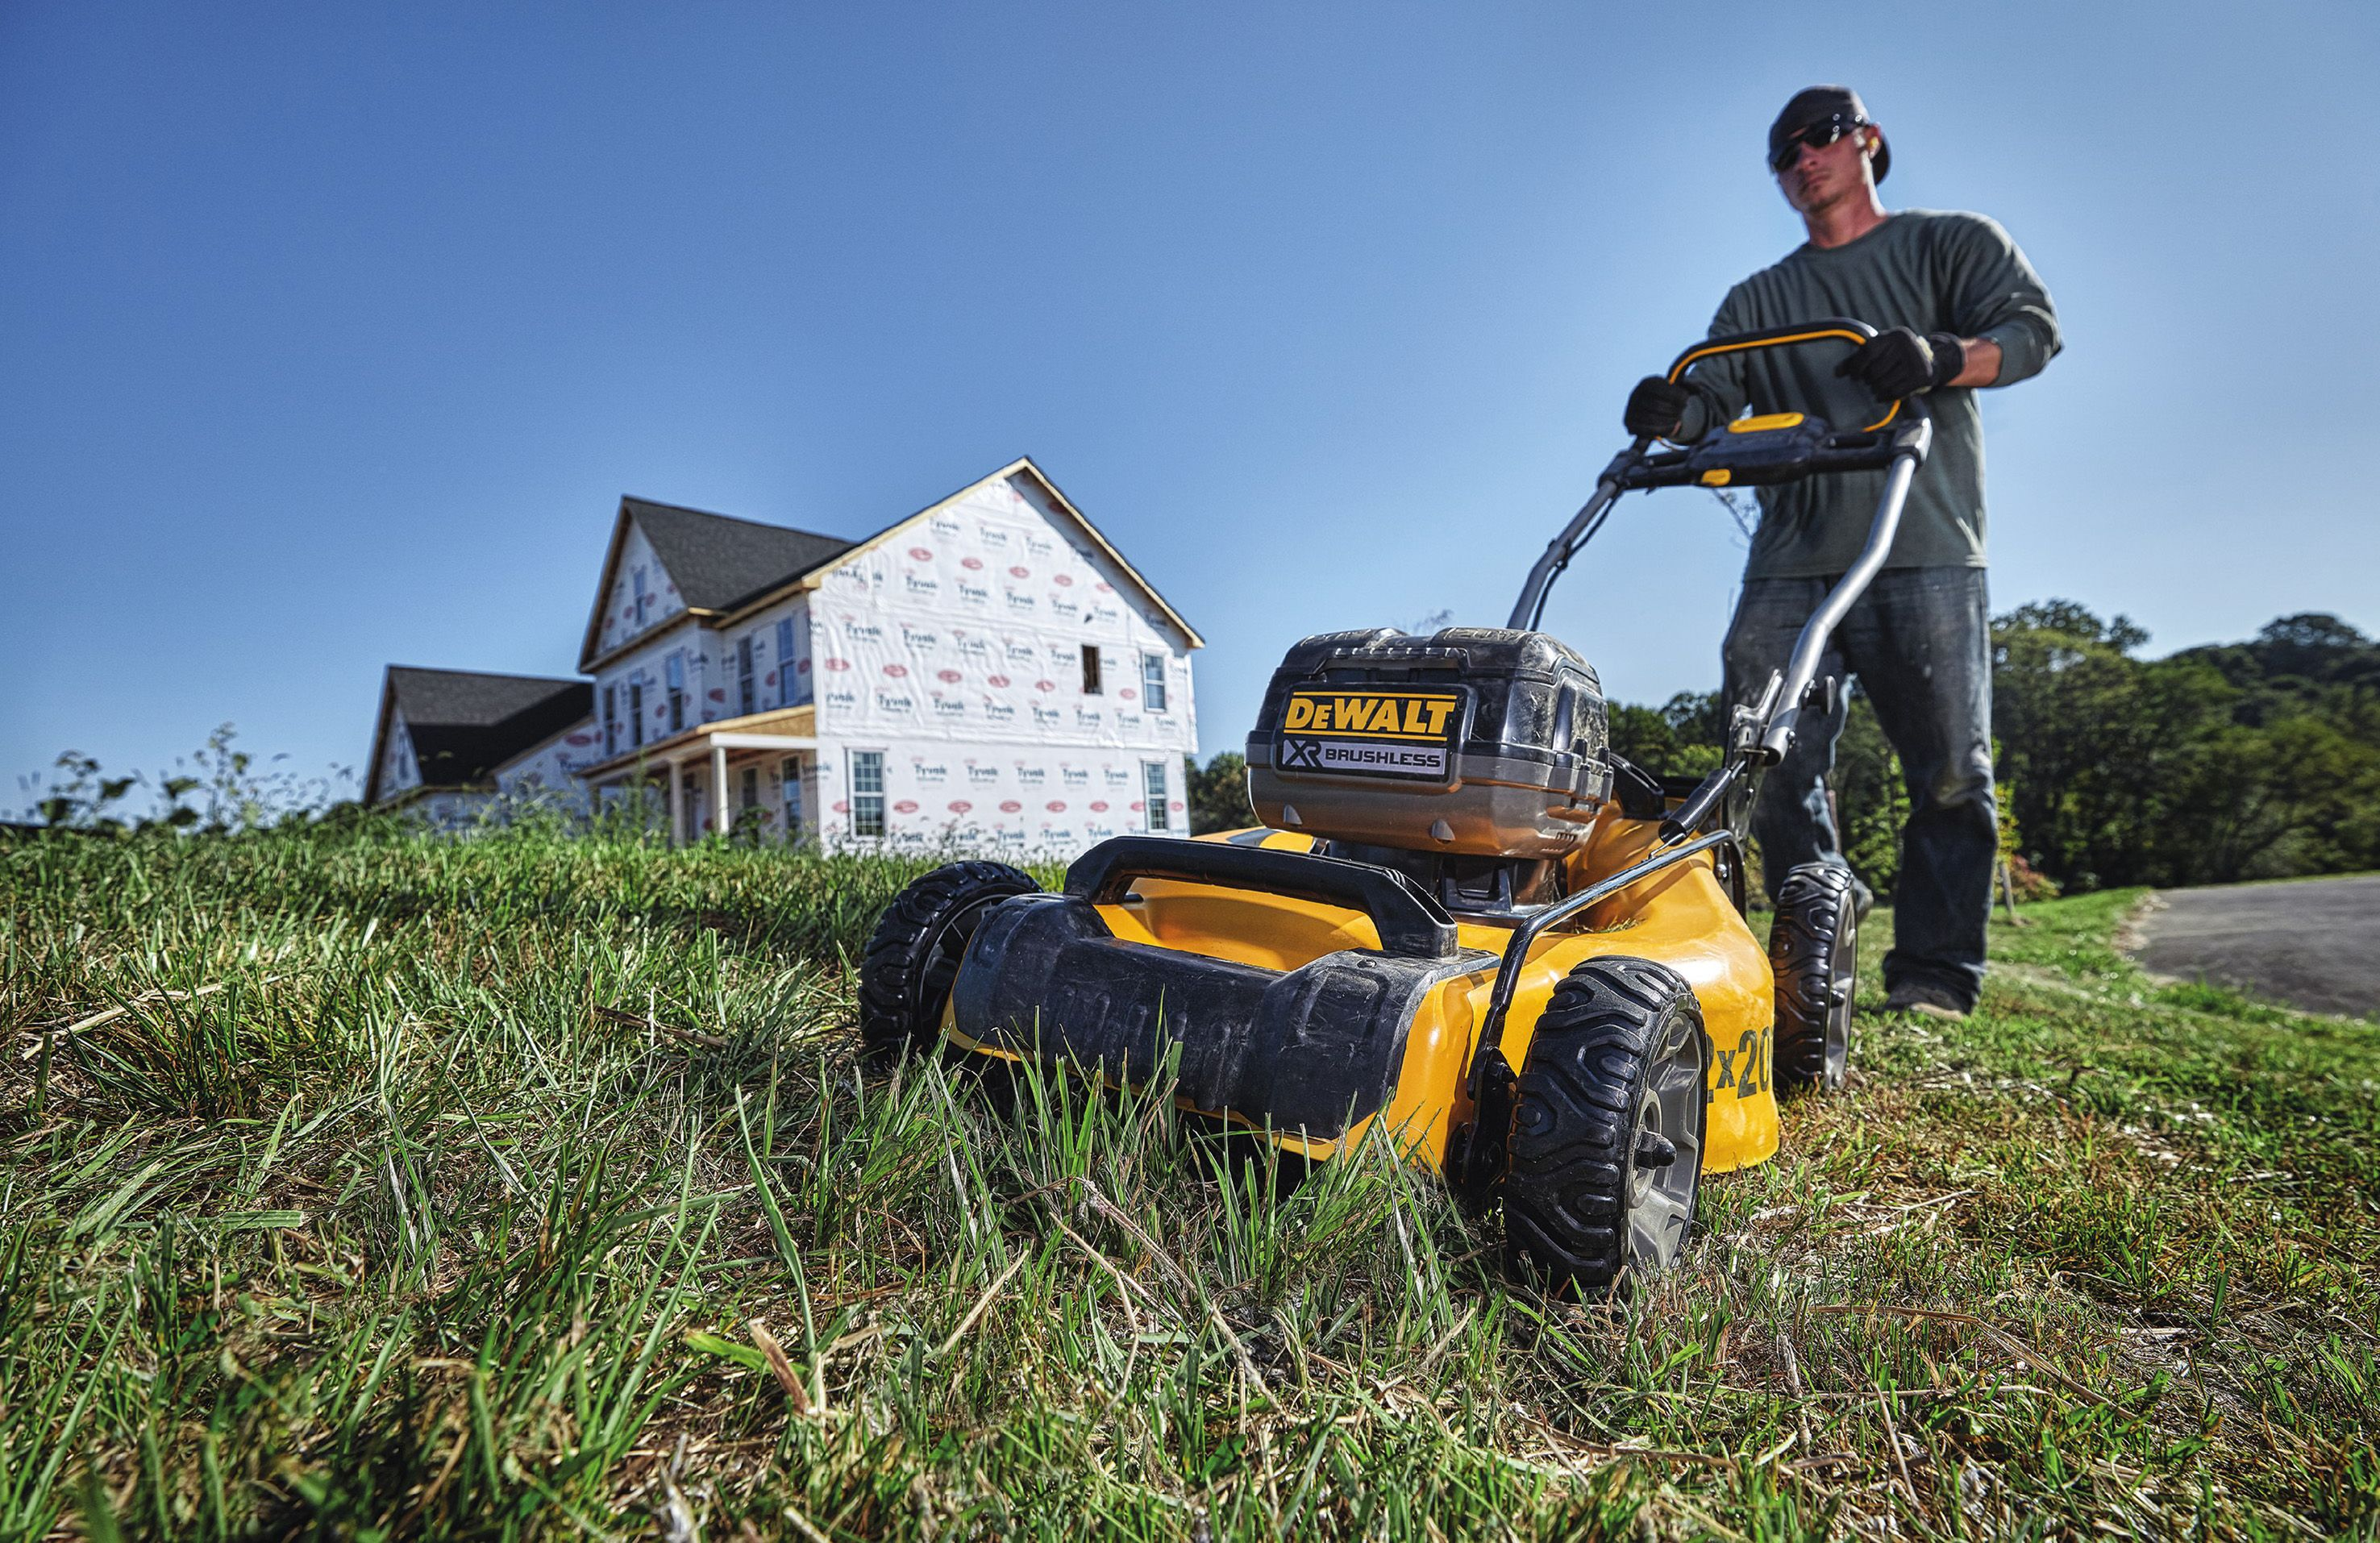 Dewalt Introduces Two New Cordless Lawn Mowers